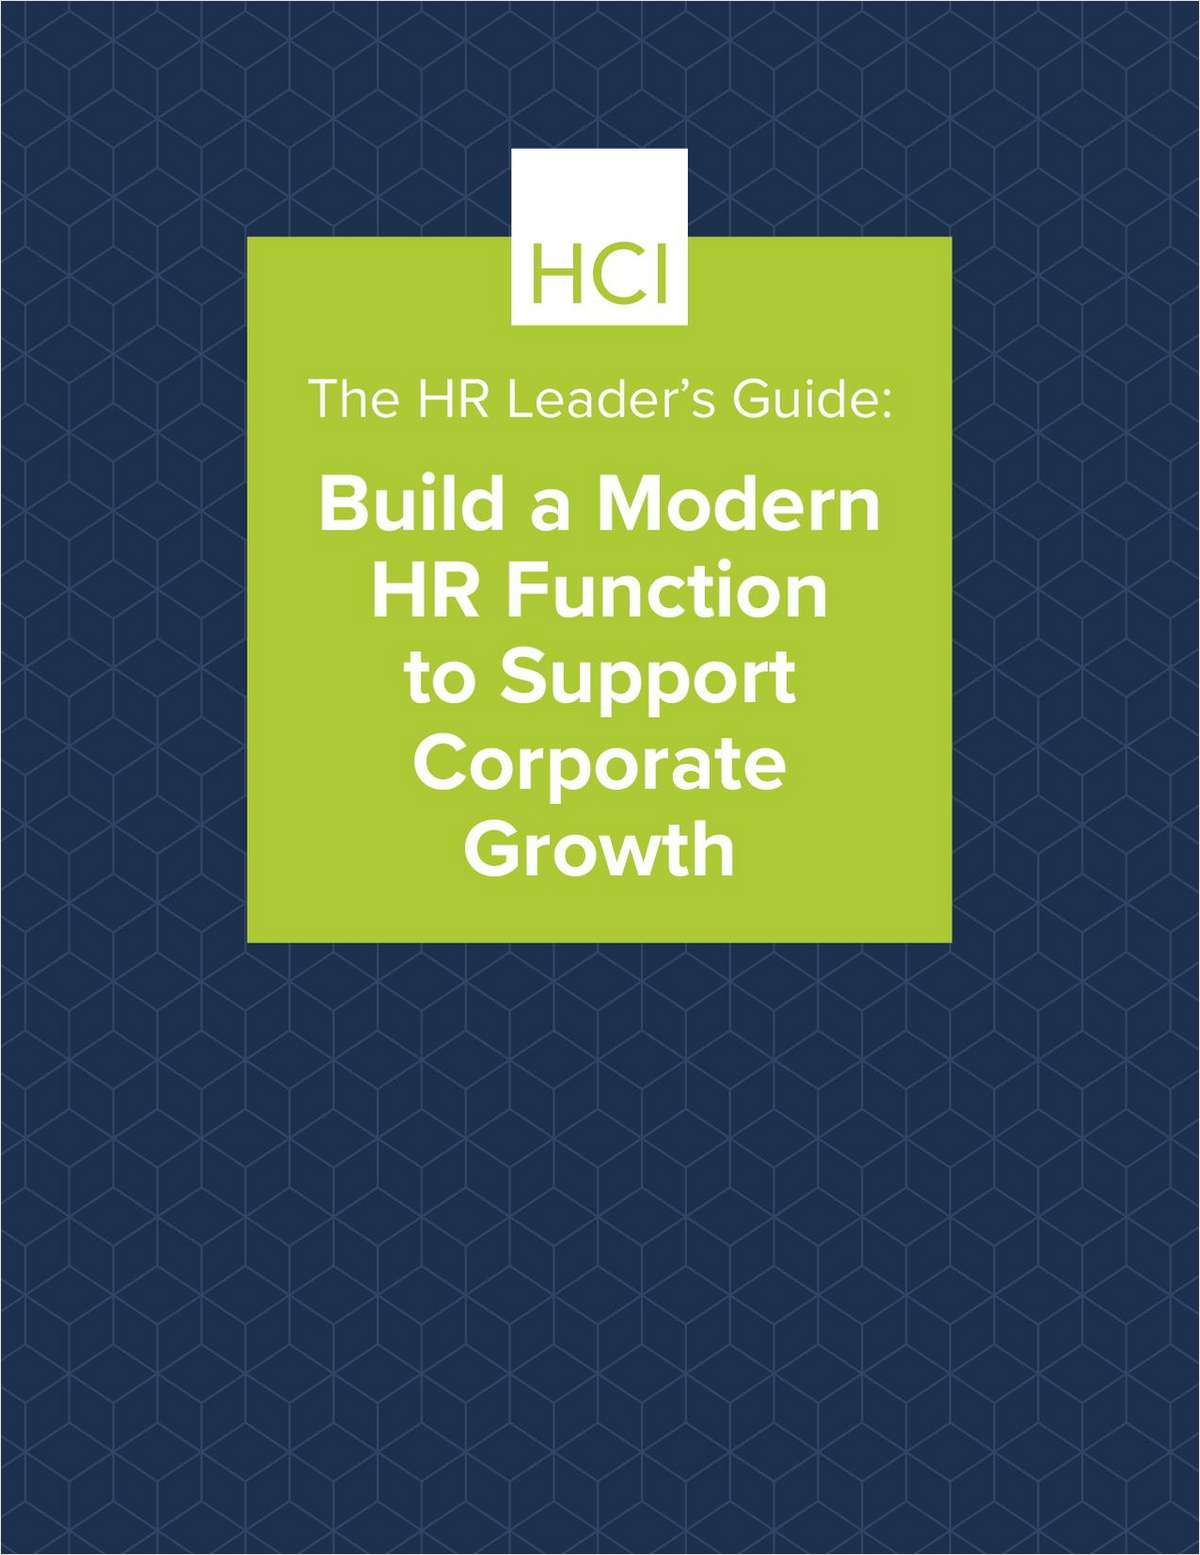 The HR Leader's Guide: Build a Modern HR Function to Support Corporate Growth